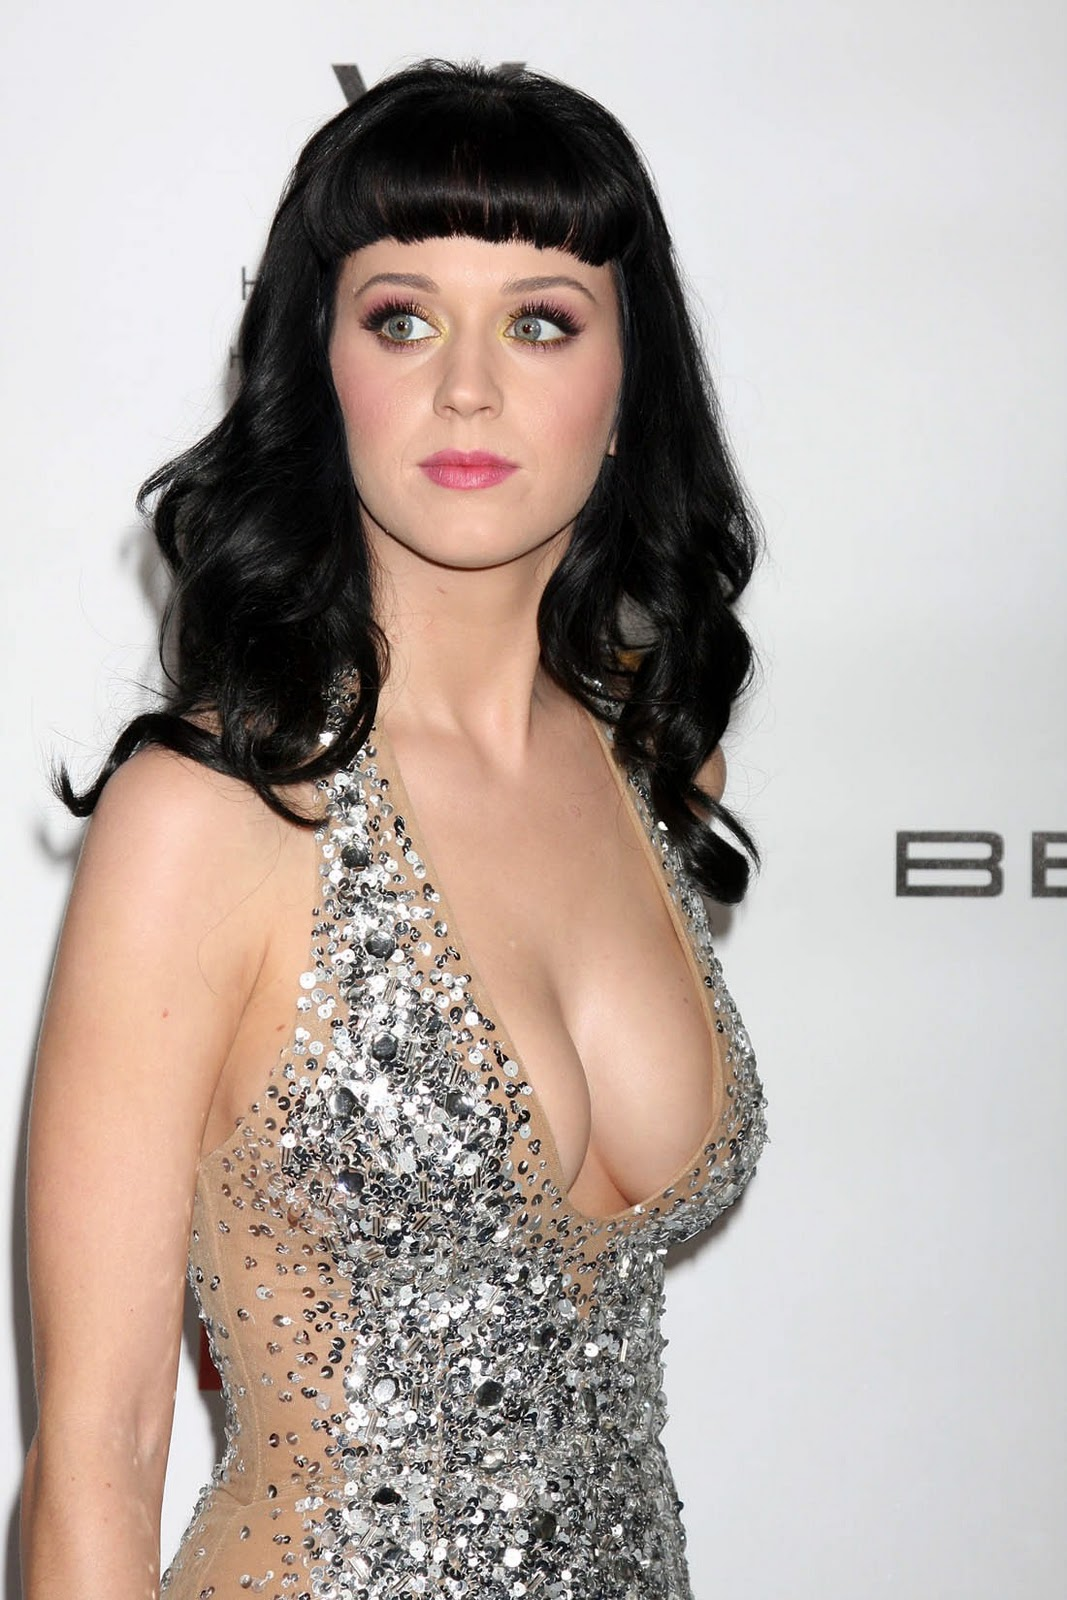 Katy-Perry-Hot-wallpaper-1